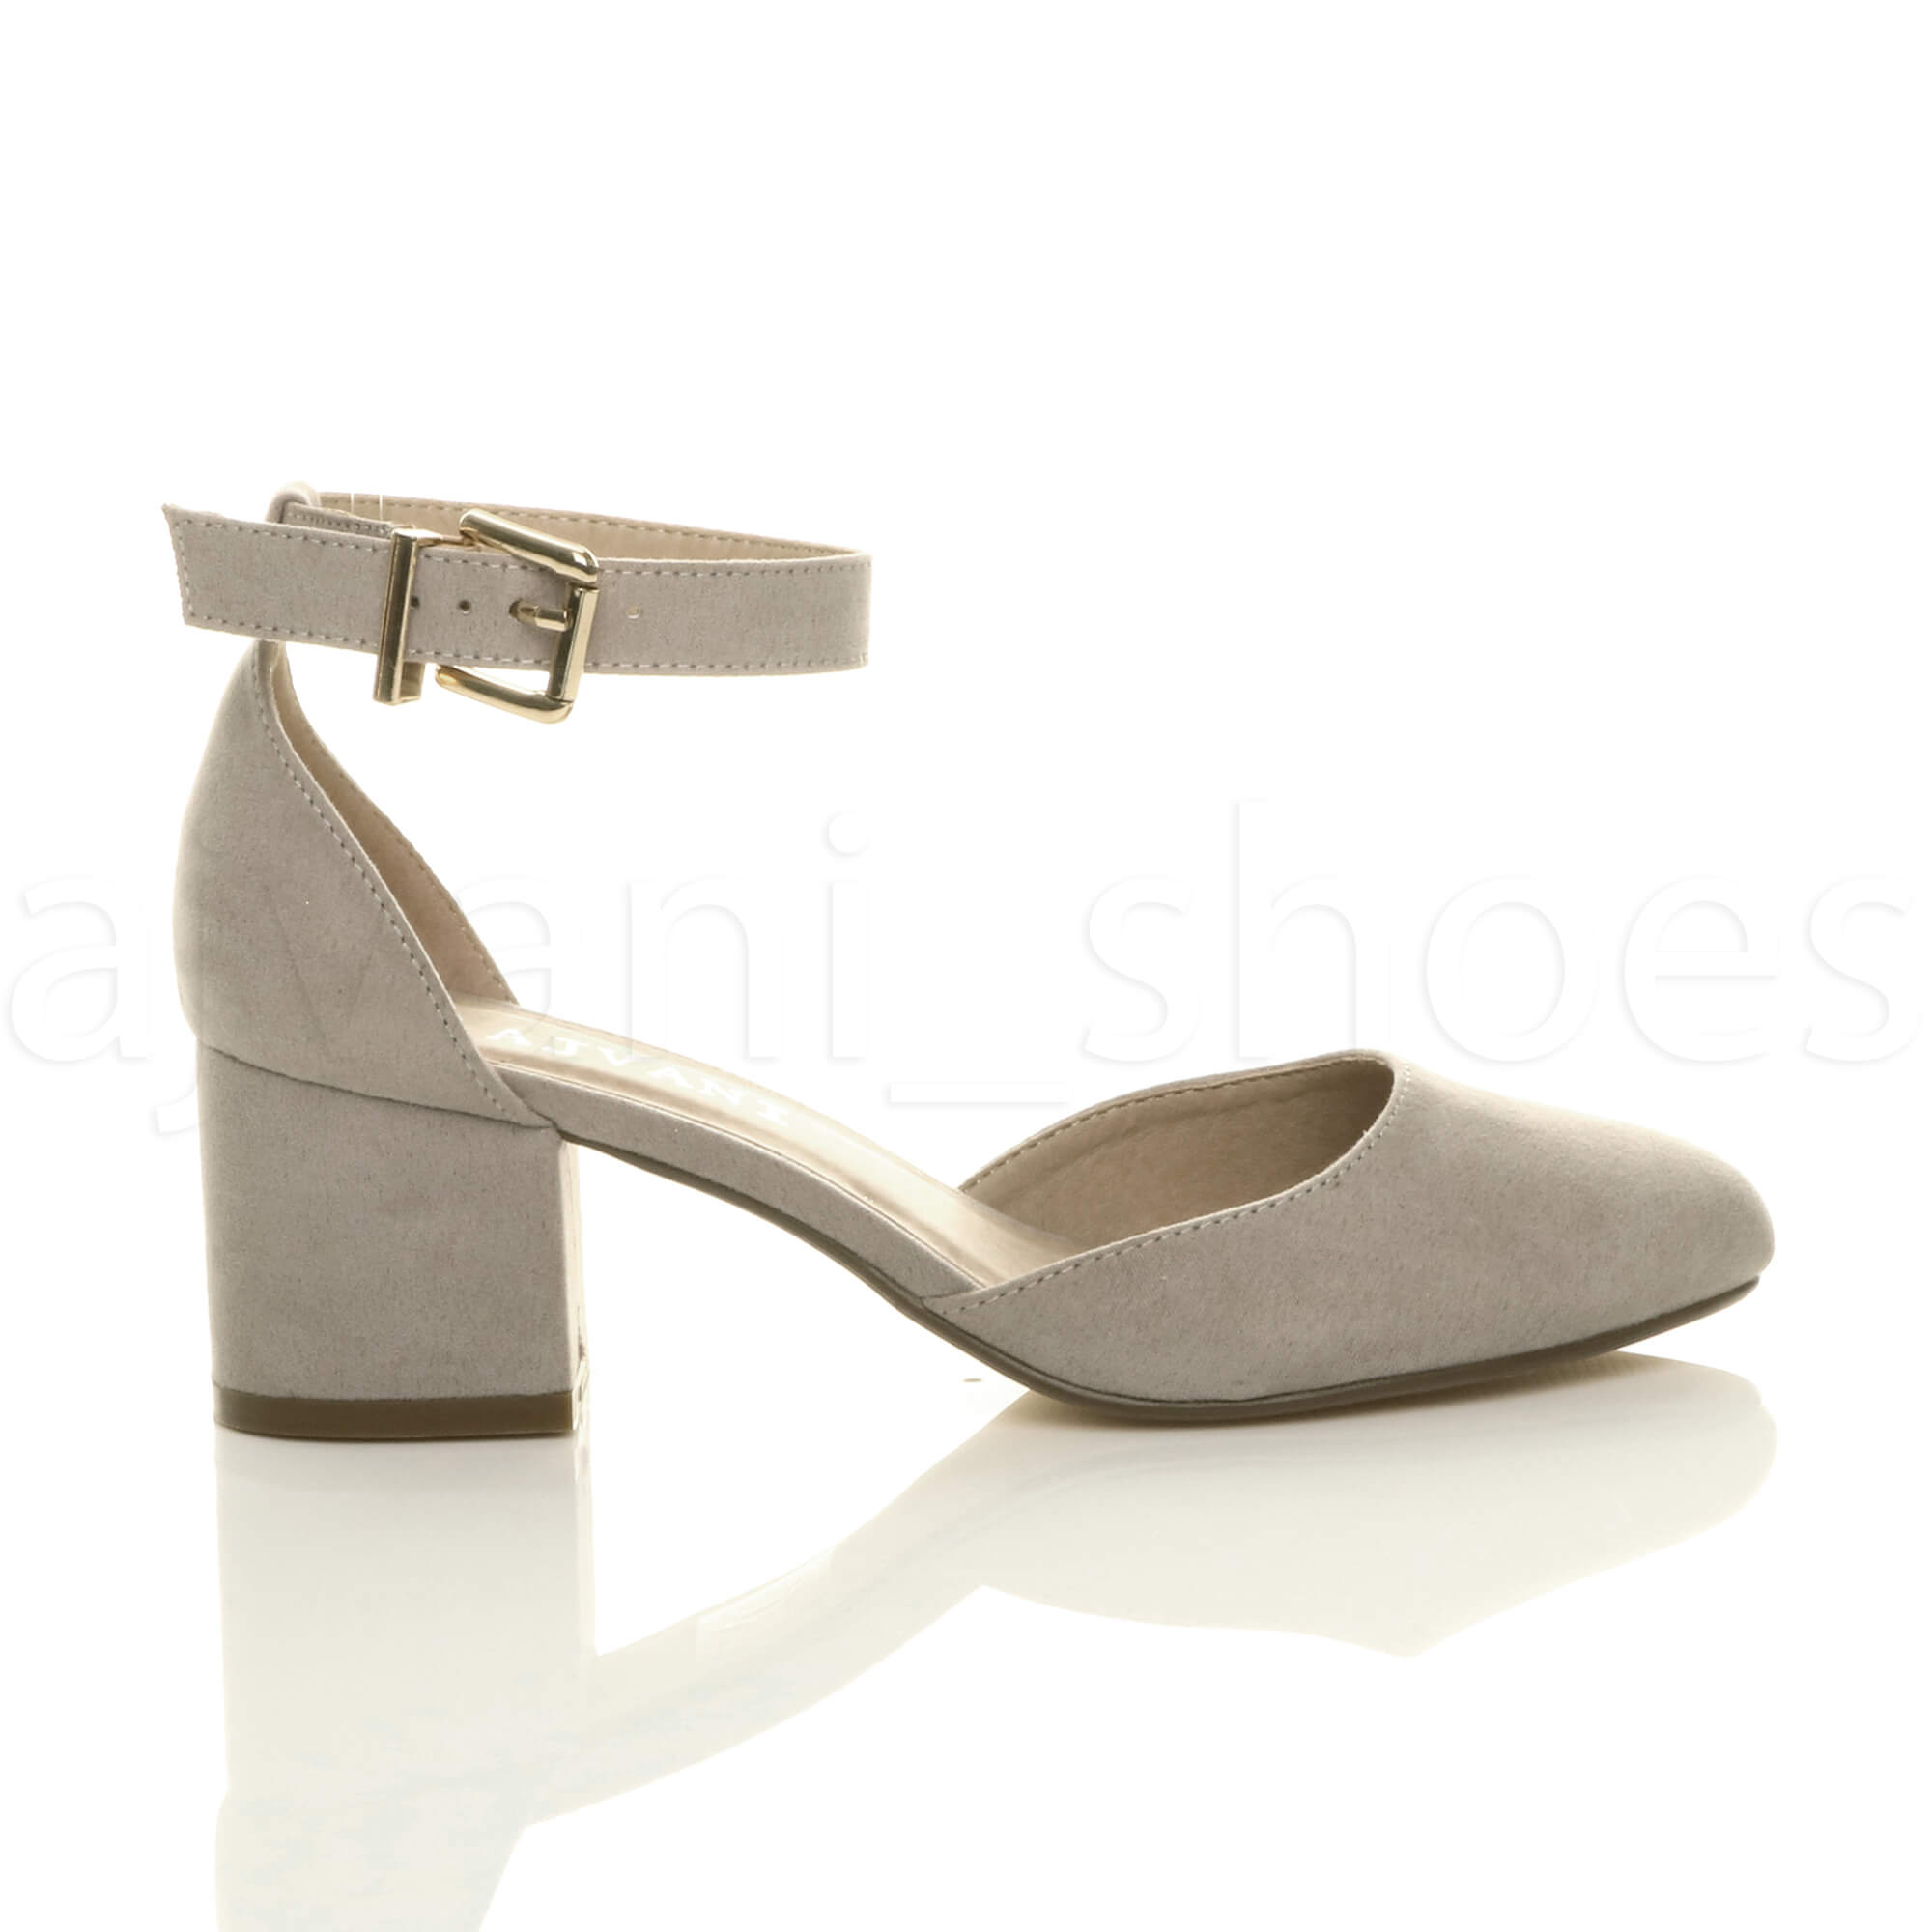 WOMENS-LADIES-LOW-MID-BLOCK-HEEL-ANKLE-STRAP-MARY-JANE-COURT-SHOES-SANDALS-SIZE thumbnail 67